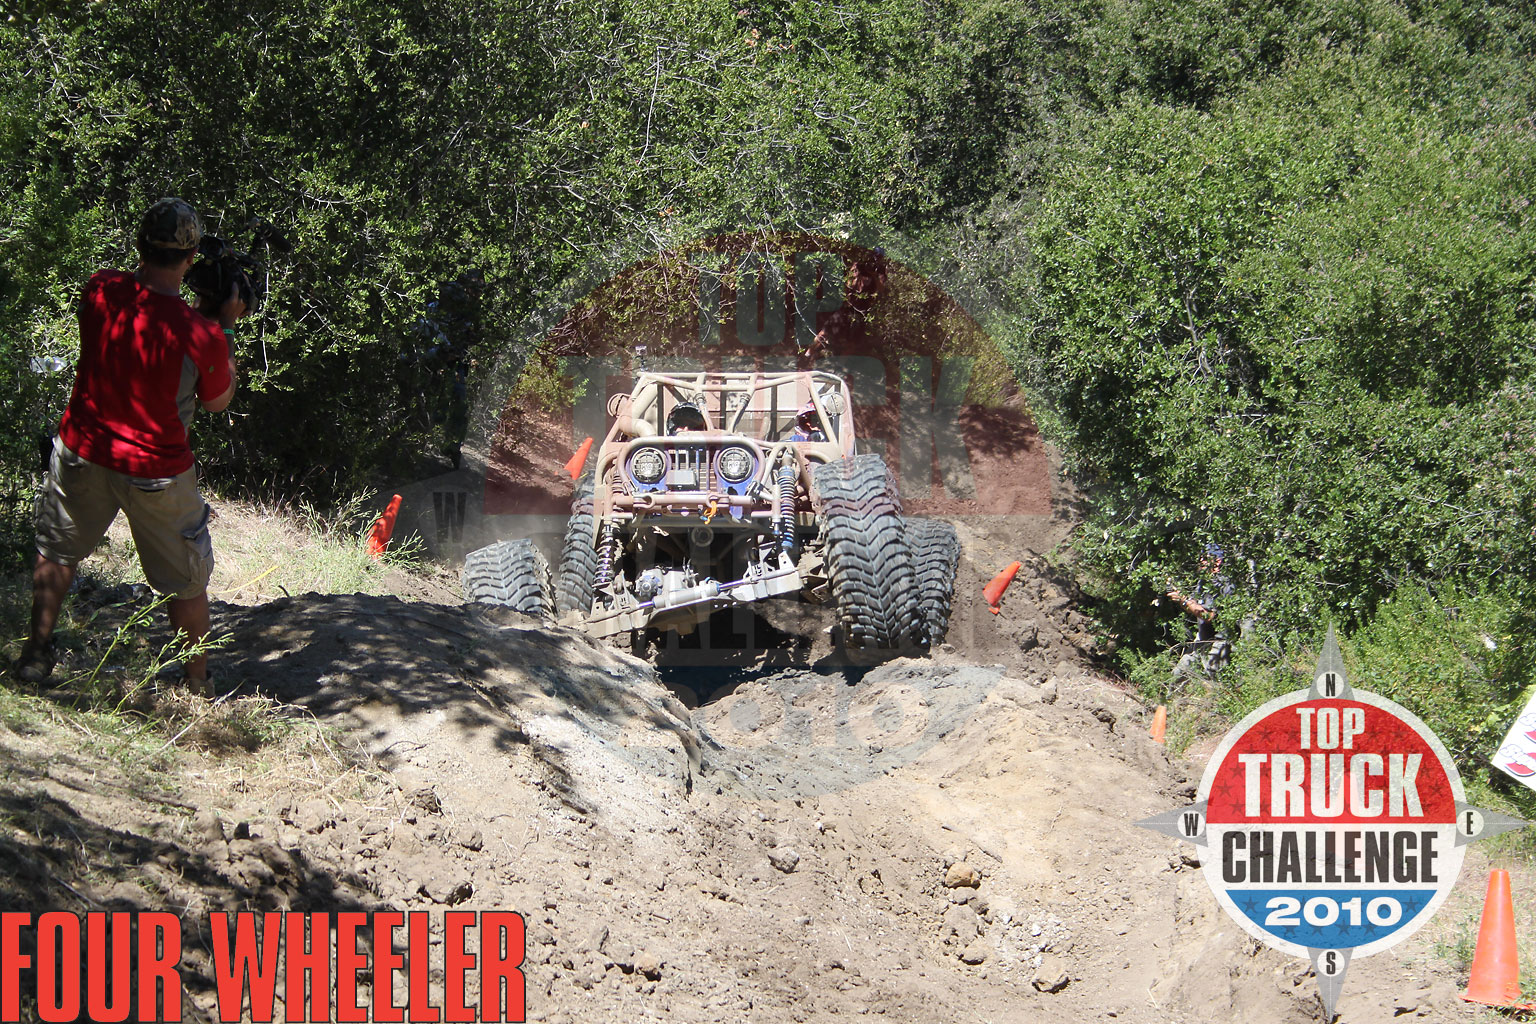 2010 Top Truck Challenge Hill Climb Joe Quichocho Tube Chassis Cj7 Buggy